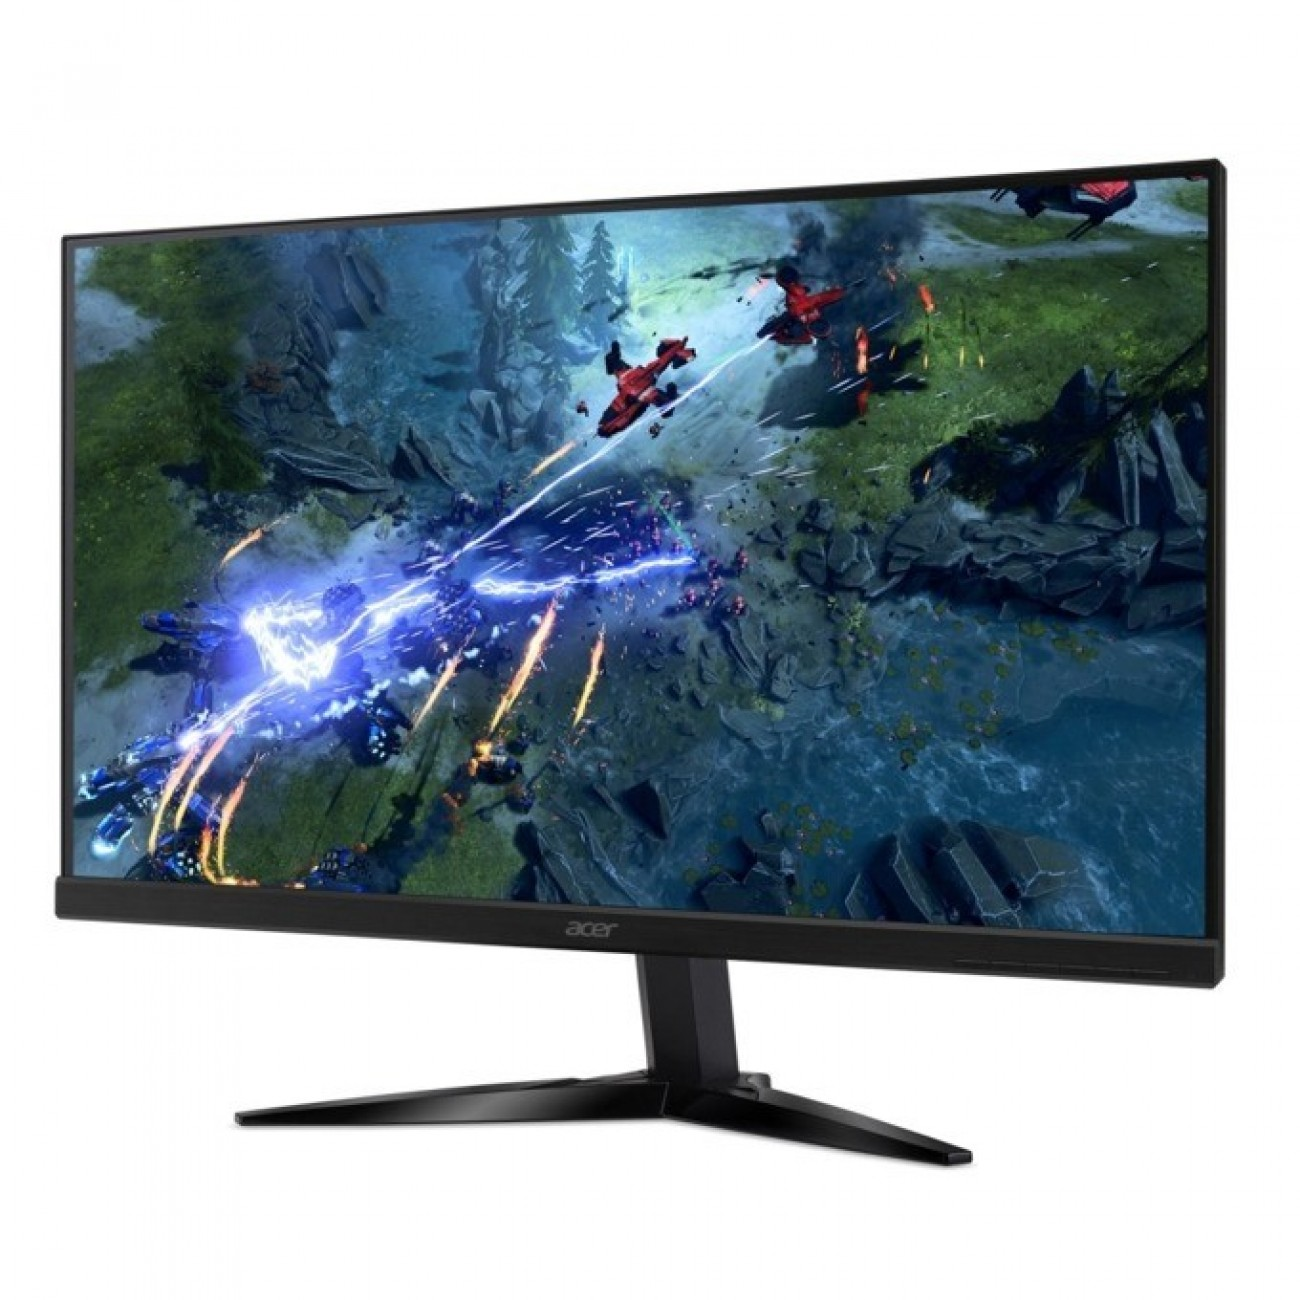 Монитор Acer KG251Qbmiix (UM.KX1EE.002), 24.5 (62.23 cm) TN панел, Full HD, 1ms, 100 000 000:1, 250cd/m2, HDMI, VGA в Монитори - Acer | Alleop